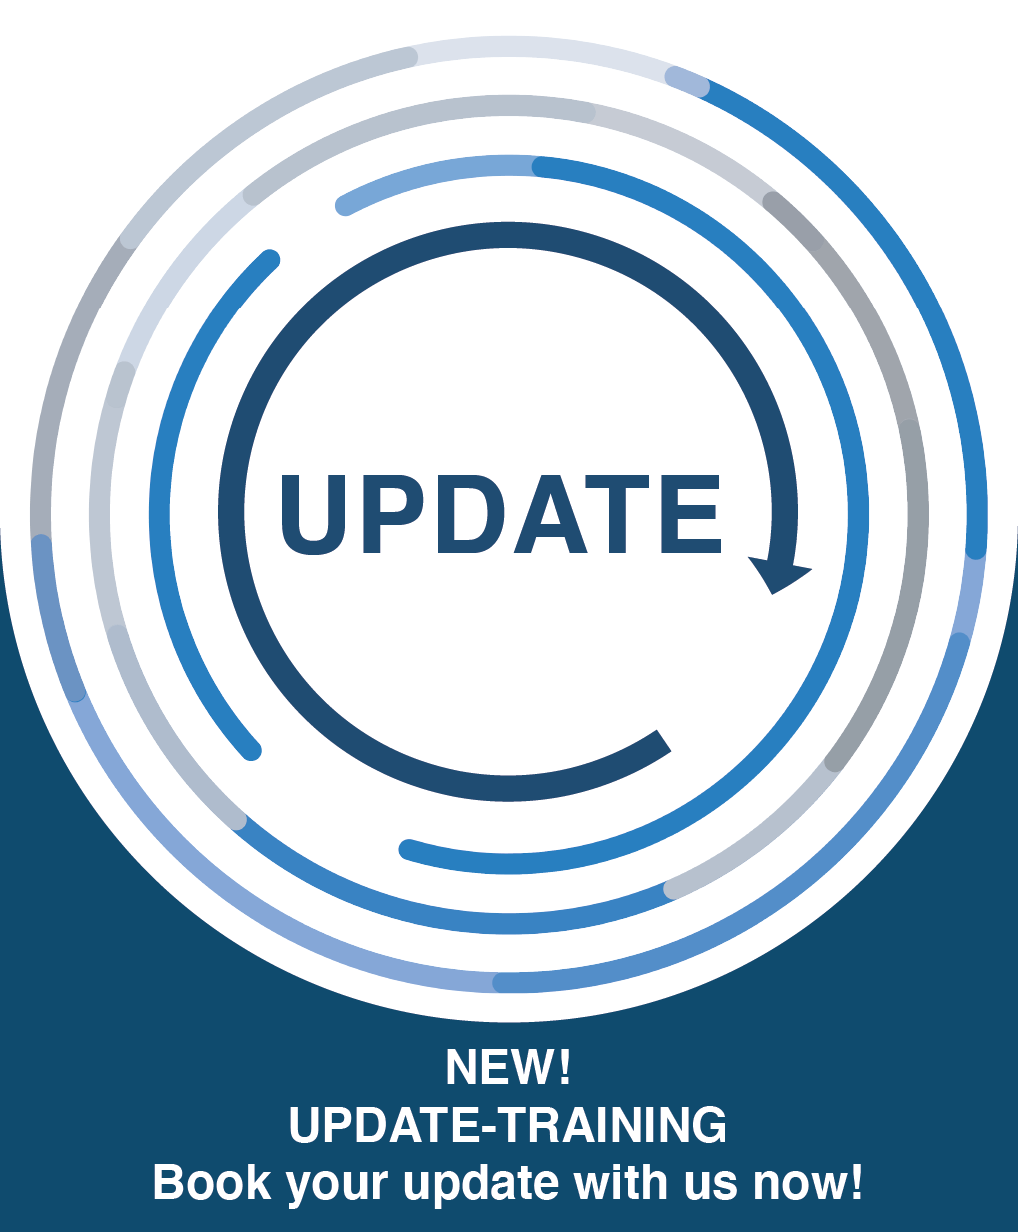 NEW! UPDATE-TRAININGBook your update with us now!